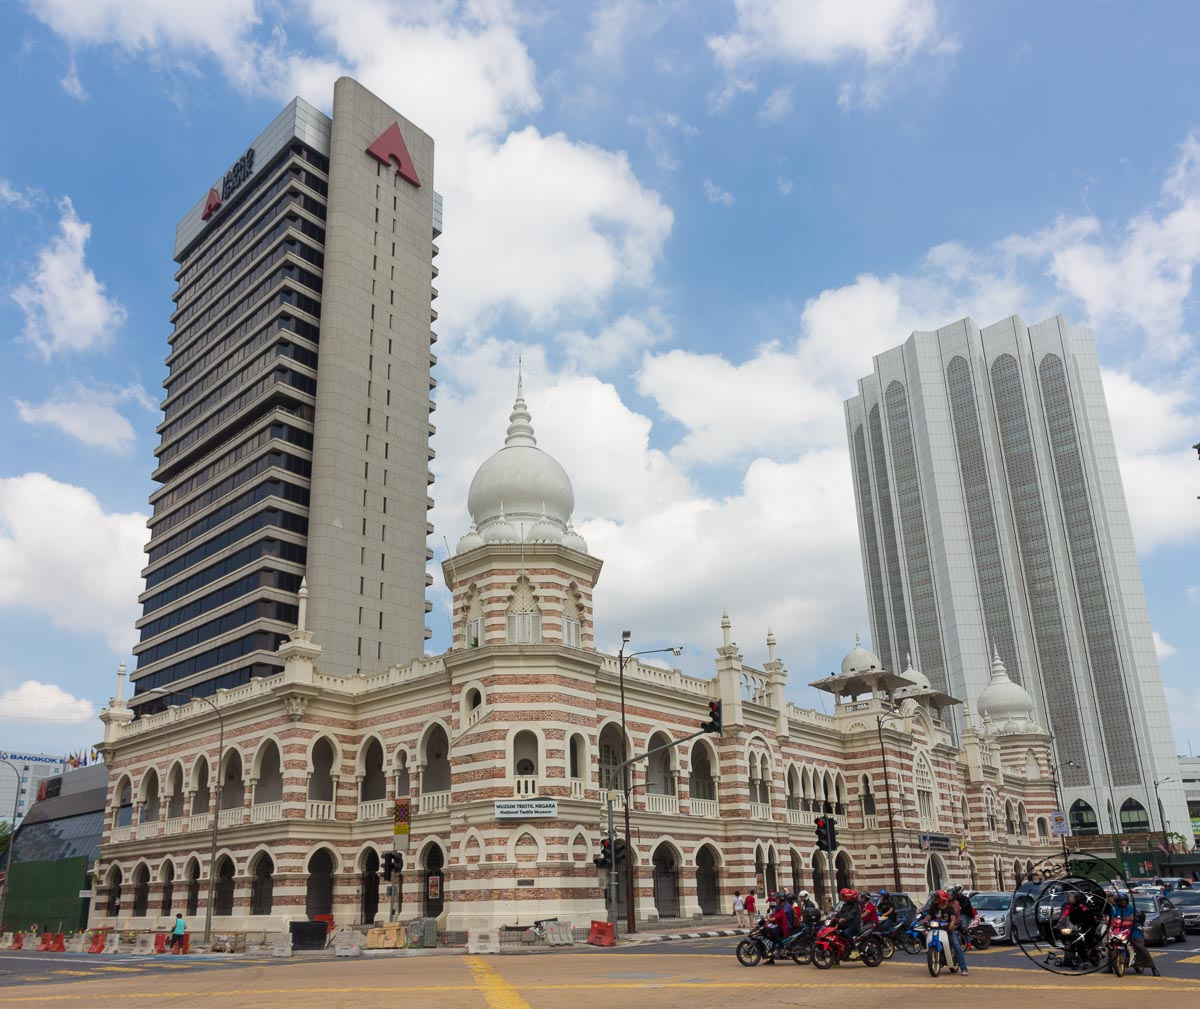 Textile Museum in Merdeka Square - Top attractions in Kuala Lumpur